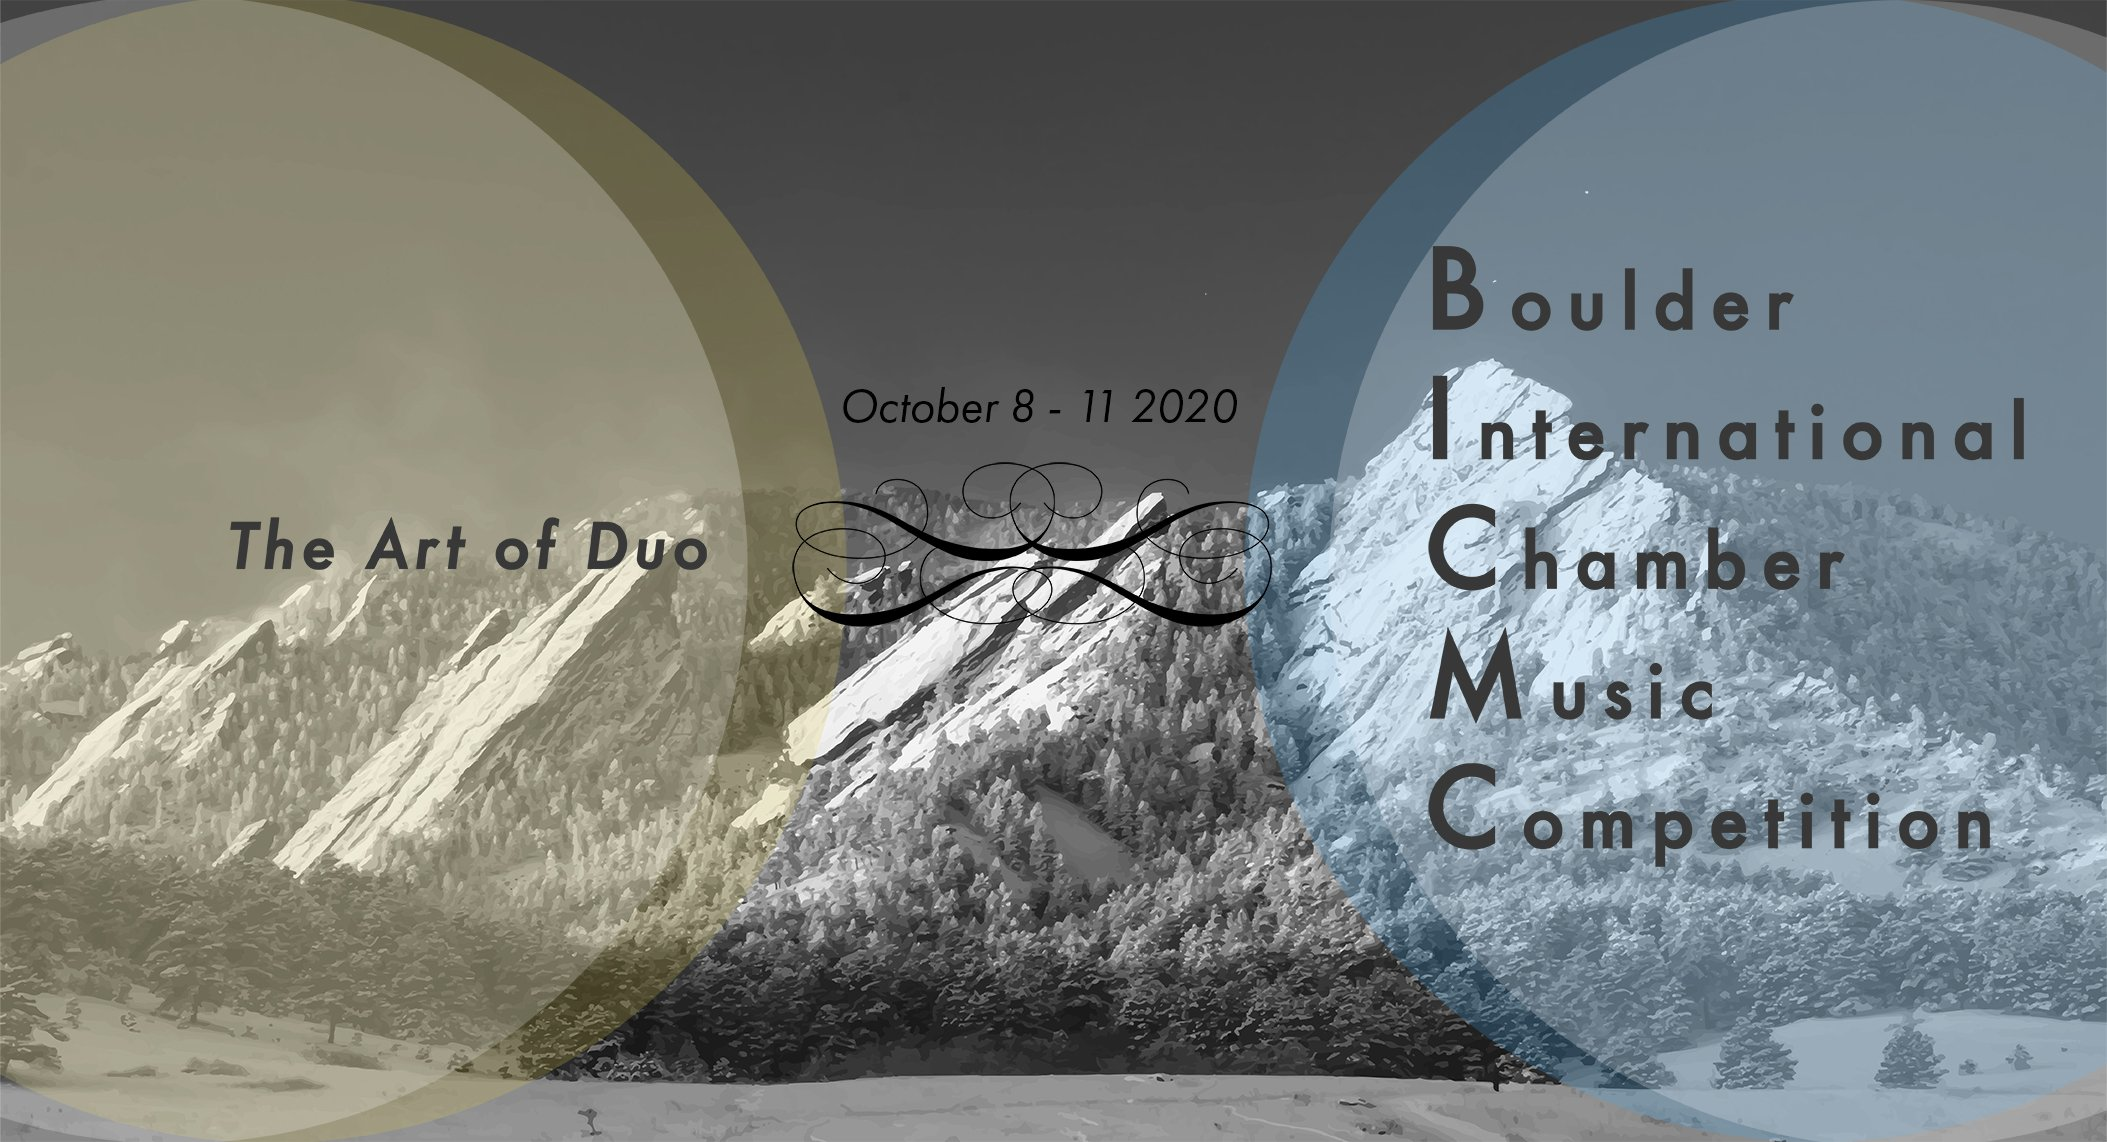 October 8 - 11 2020 Boulder International Chamber Music Competition